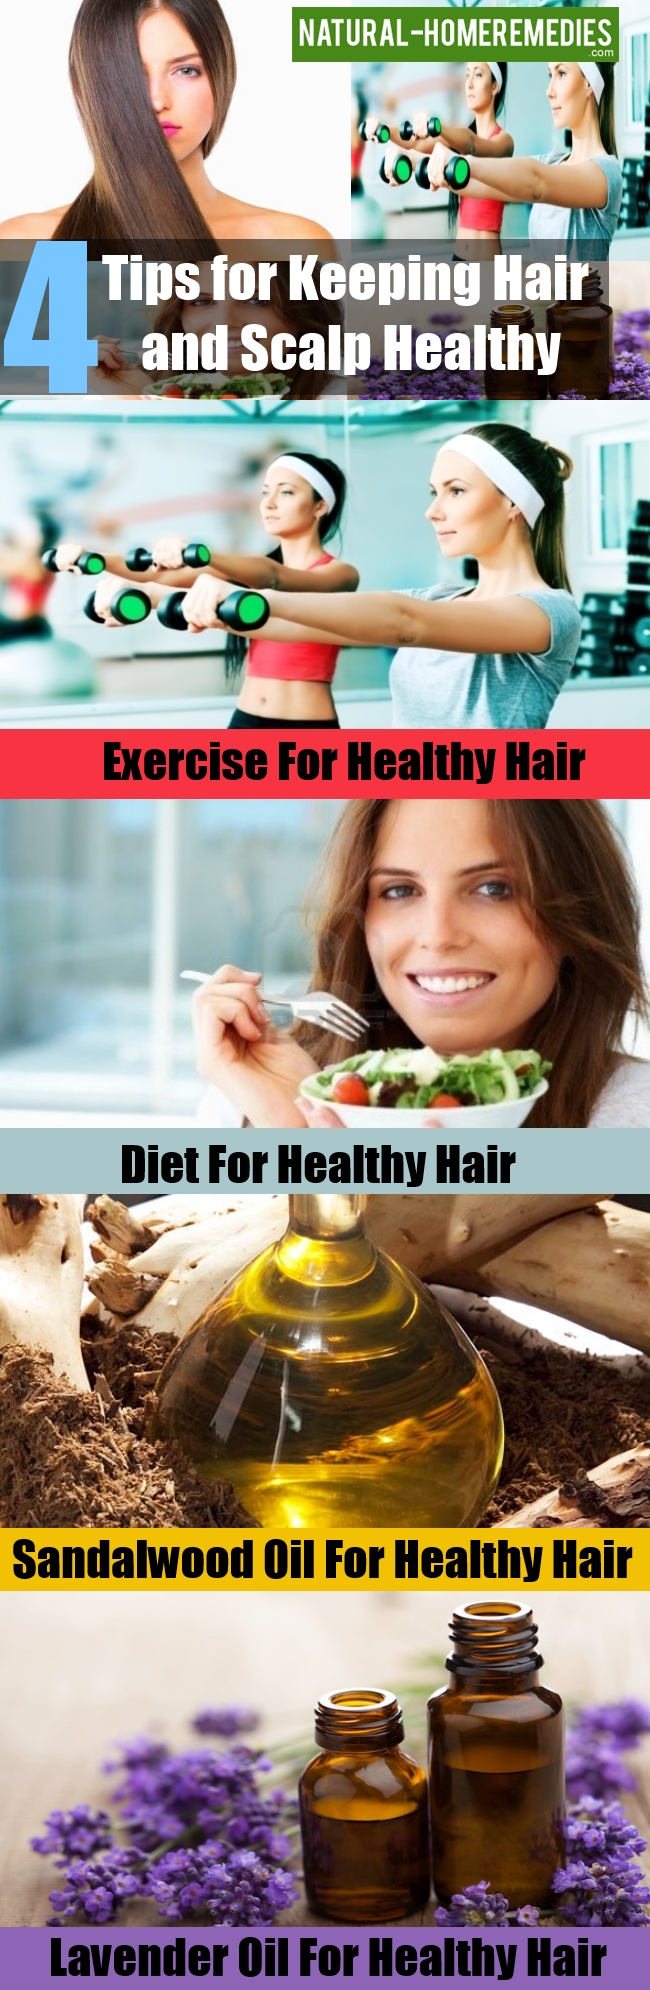 Tips for Keeping Hair and Scalp Healthy